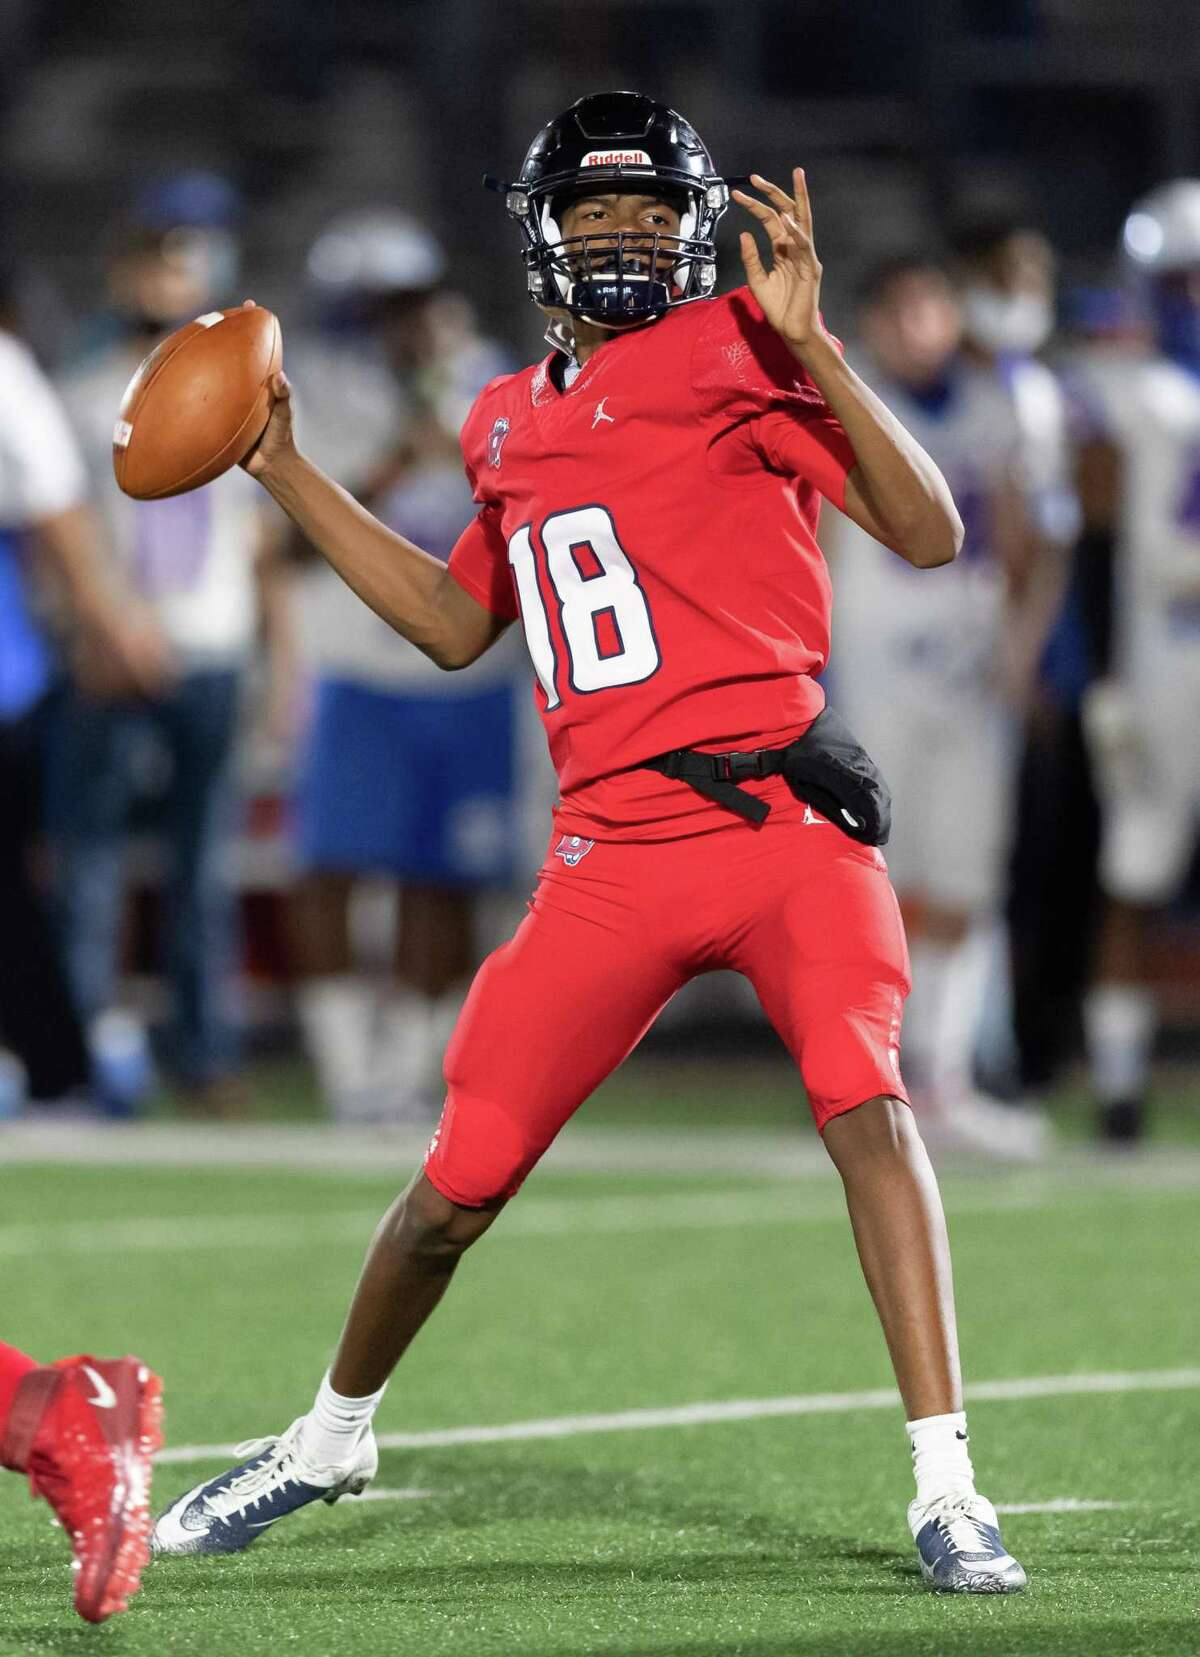 Colin Johnson (18) of the Dawson Eagles attempts a pass in the second half against the Dickinson Gators during a High School bi-district playoff football game on Thursday, December 10, 2020 at Pearland ISD Stadium in Pearland, Texas.